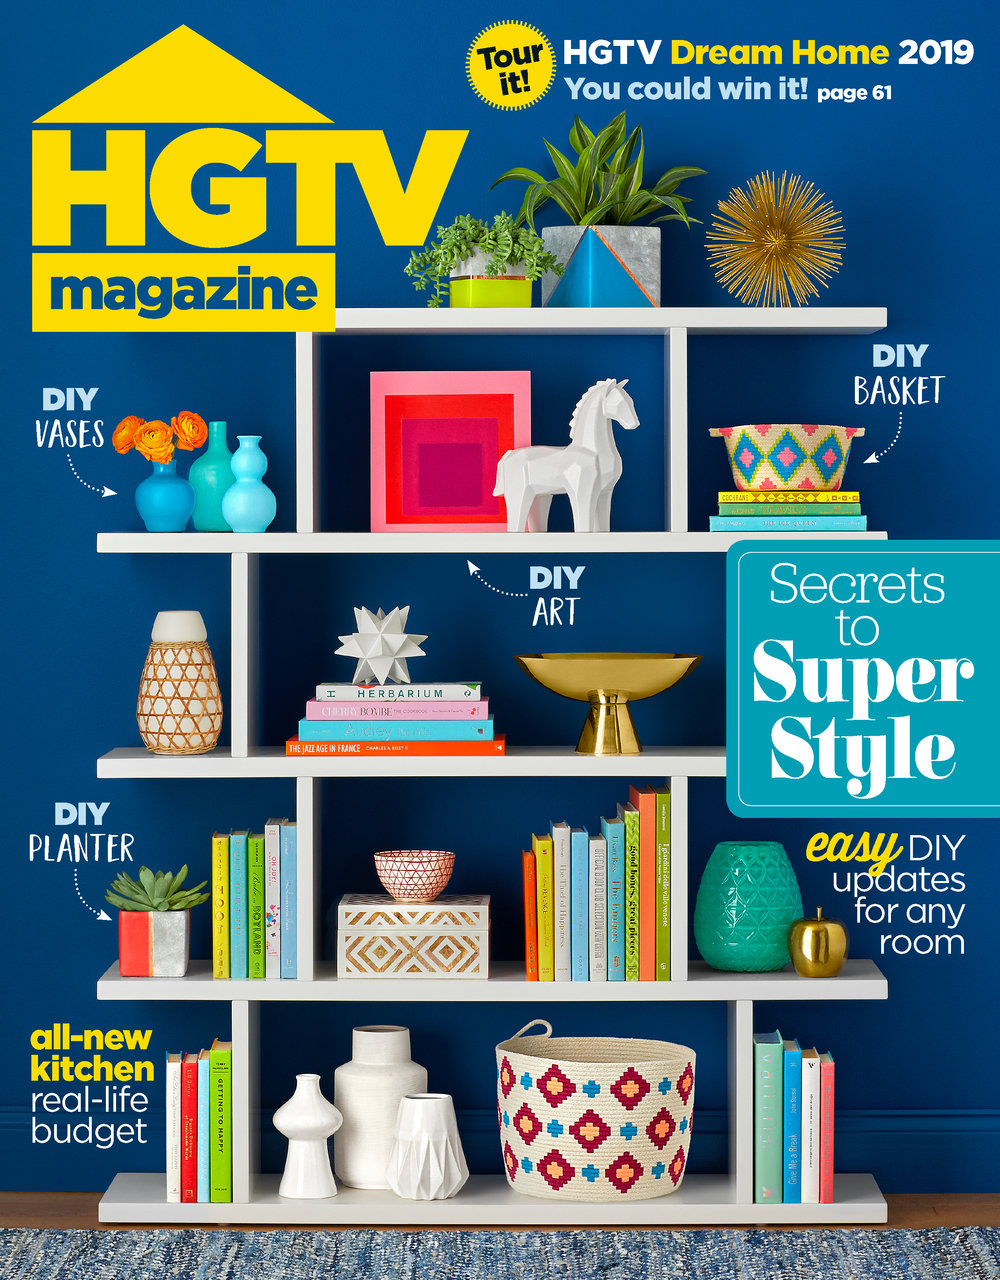 HGTV Magazine - Jan 2019